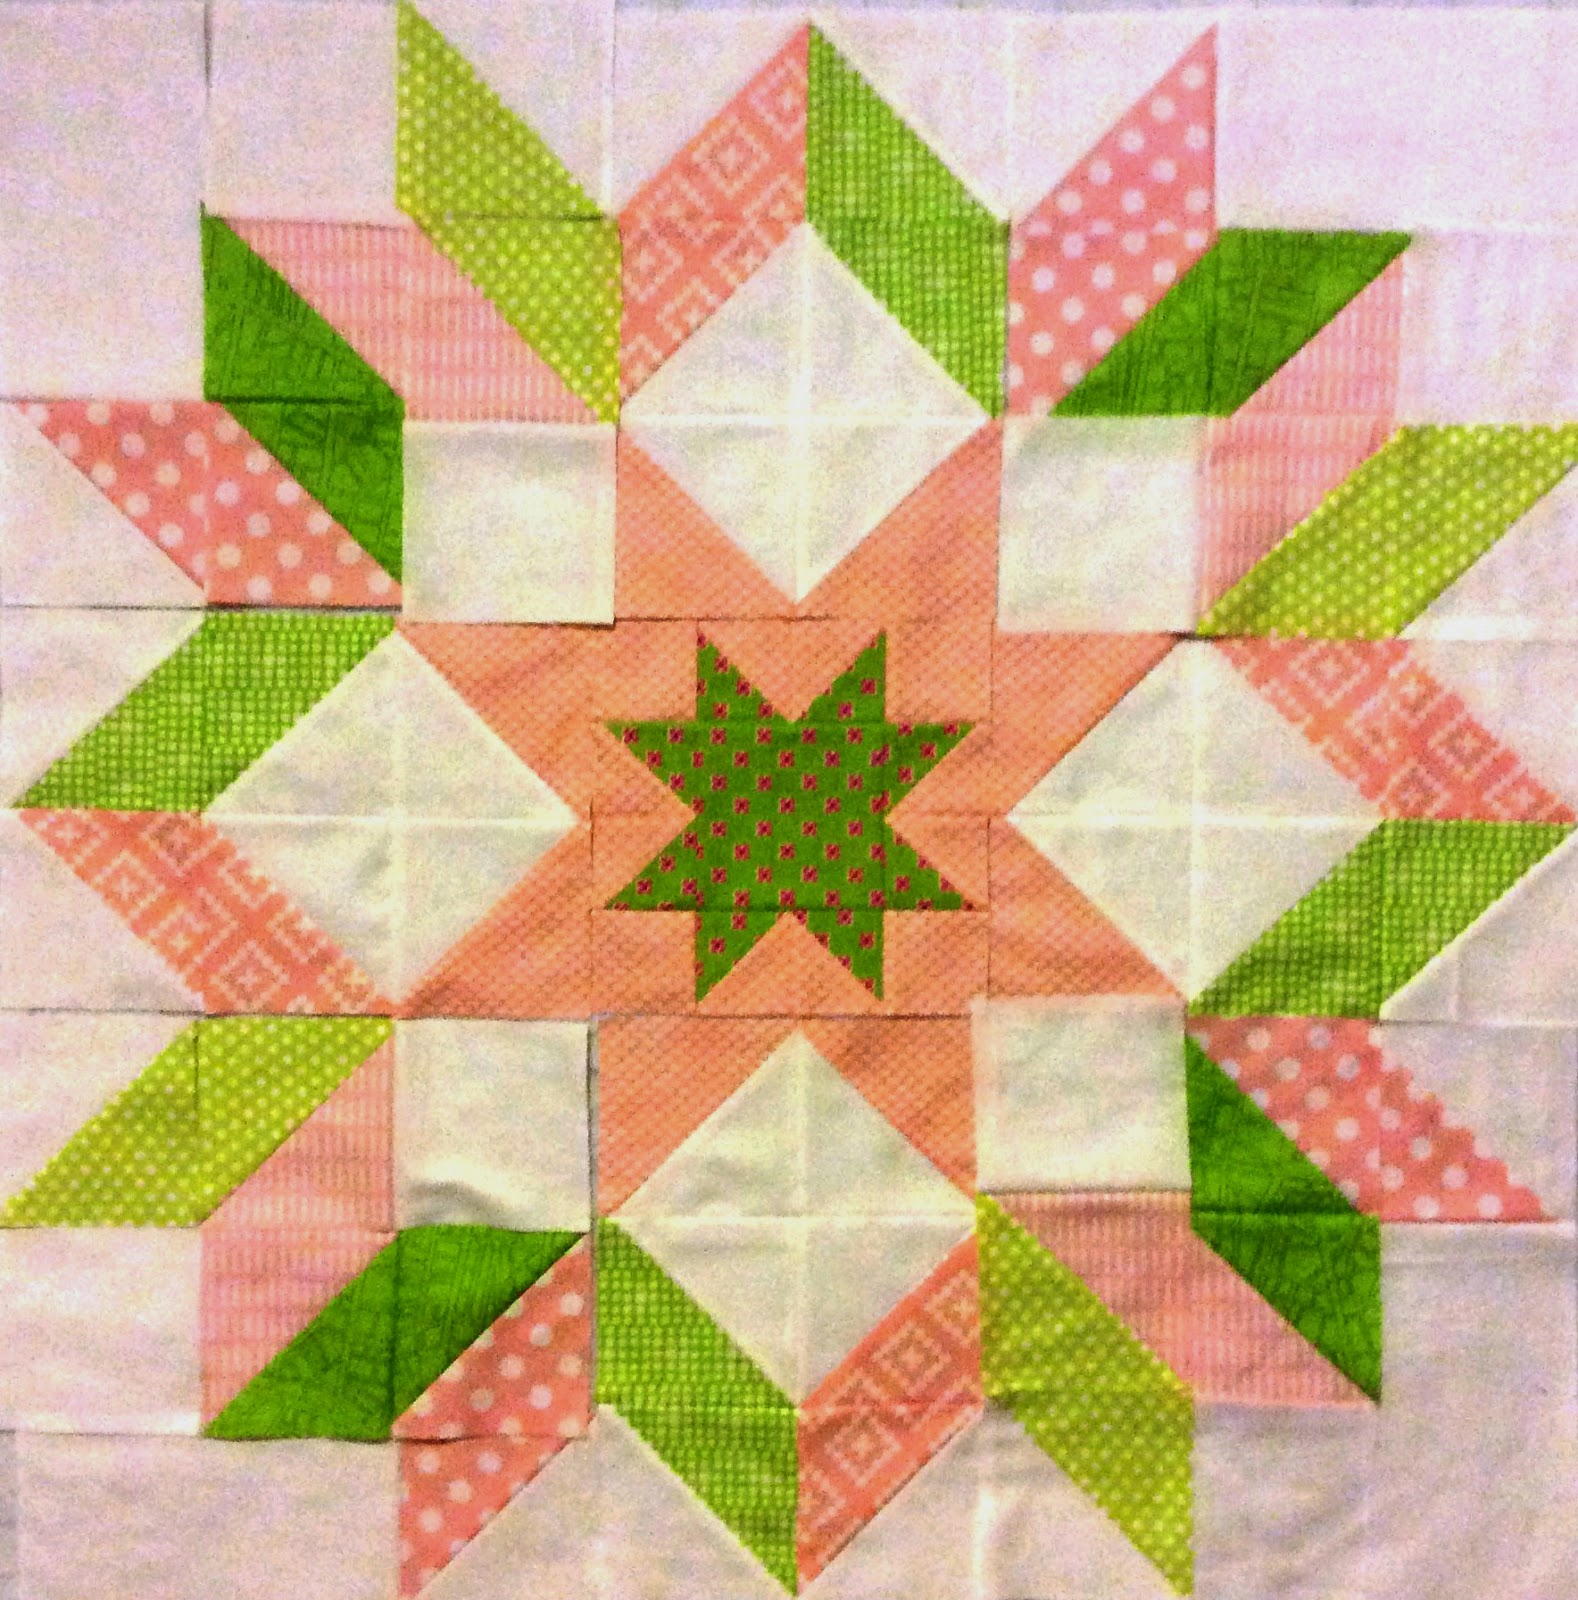 The Starburst Quilt pink and green